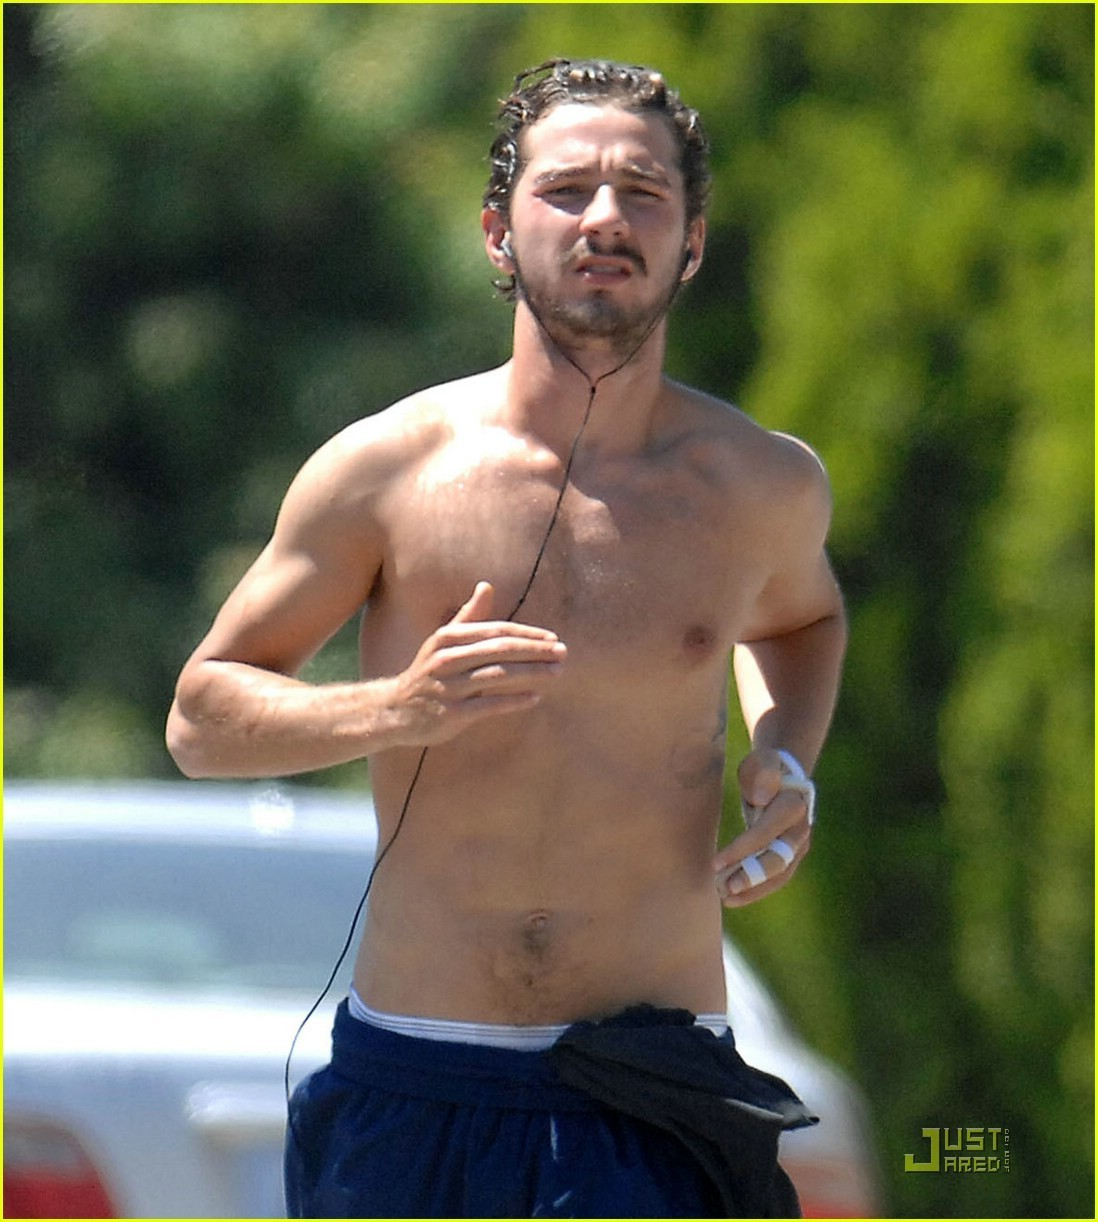 Shia Labeouf Shirtless Shia Labeouf Photo 7128647 Fanpop